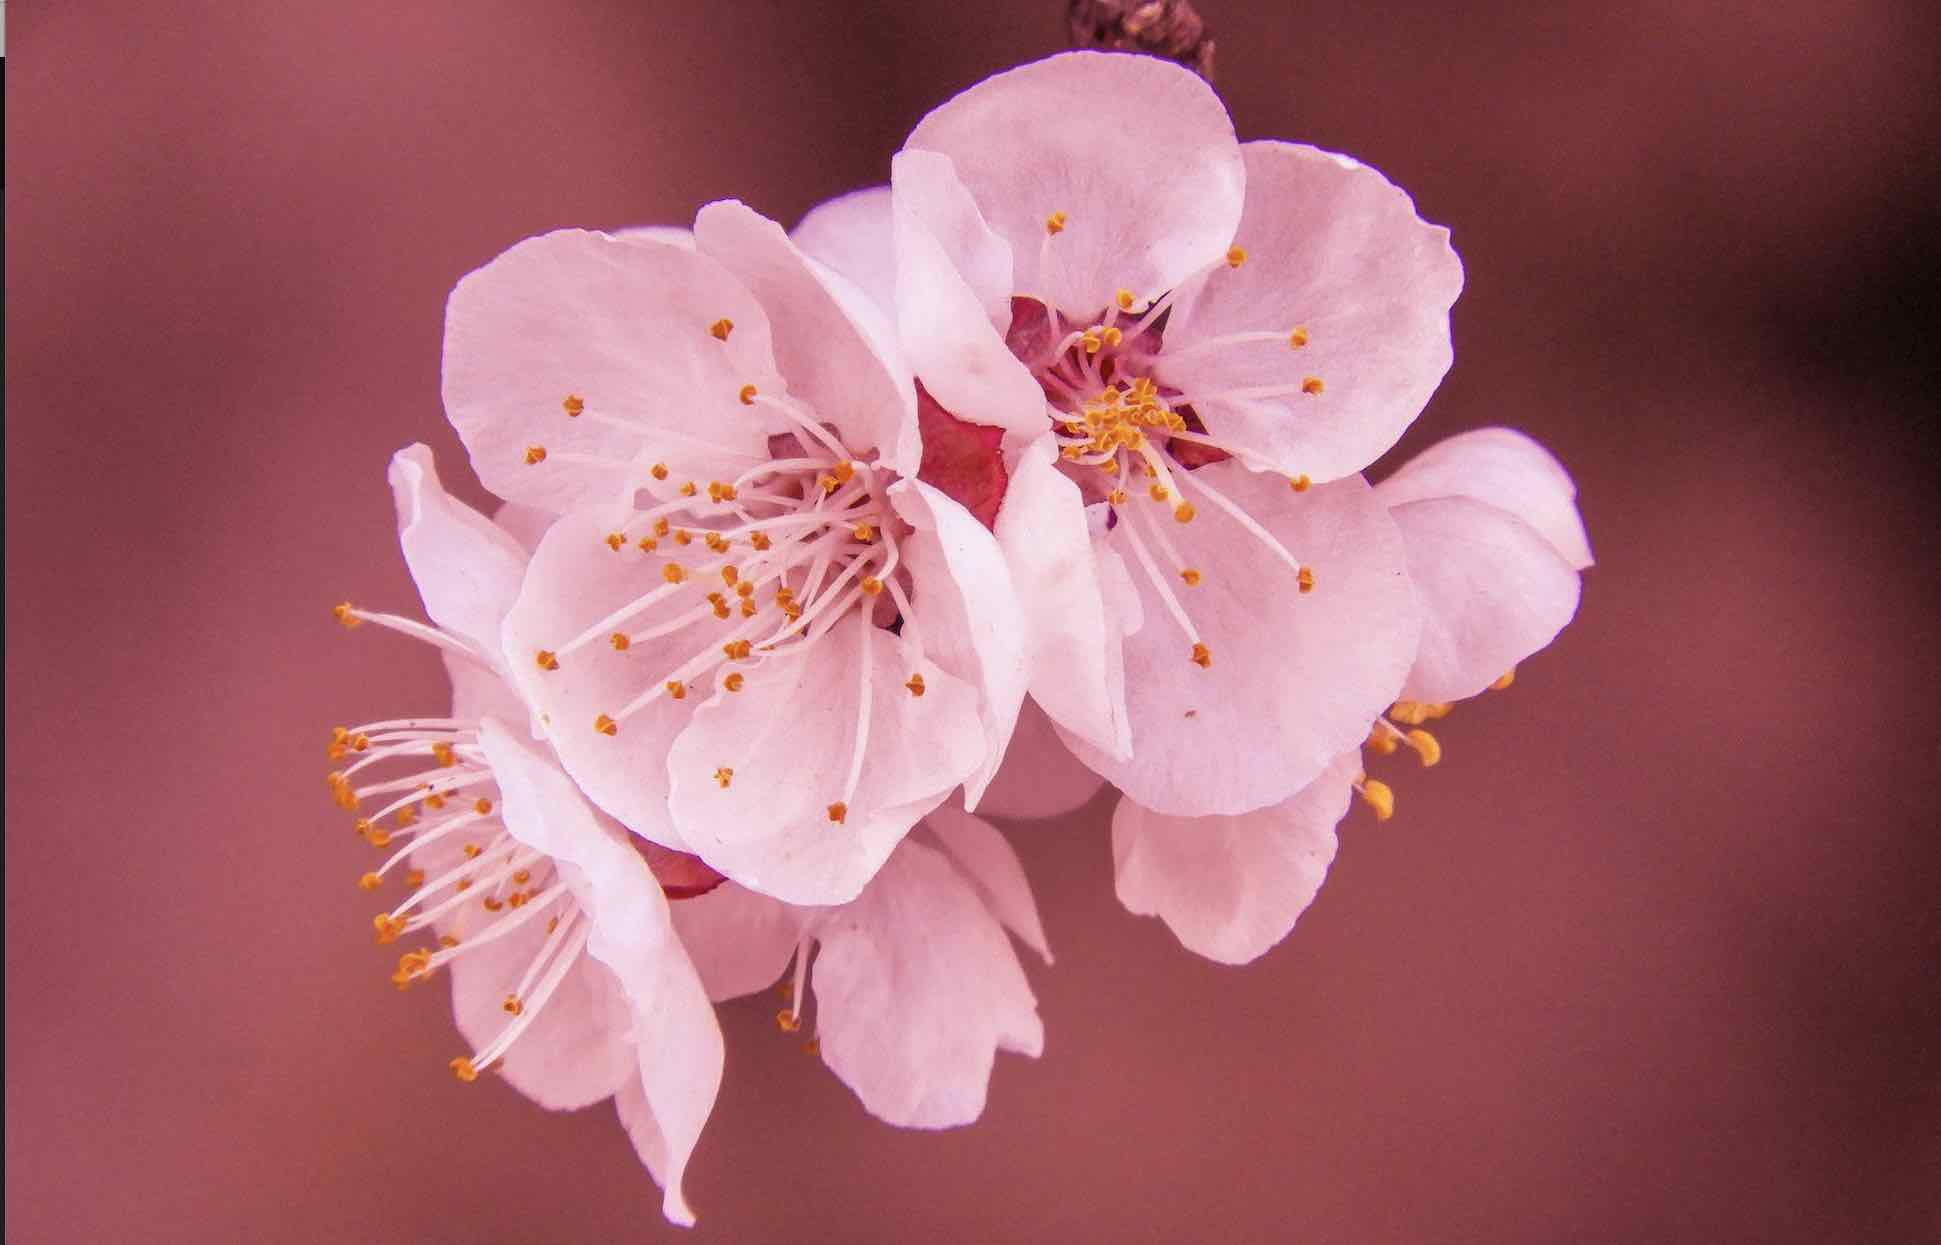 Close up image of beautiful pink cherry blossom flowers